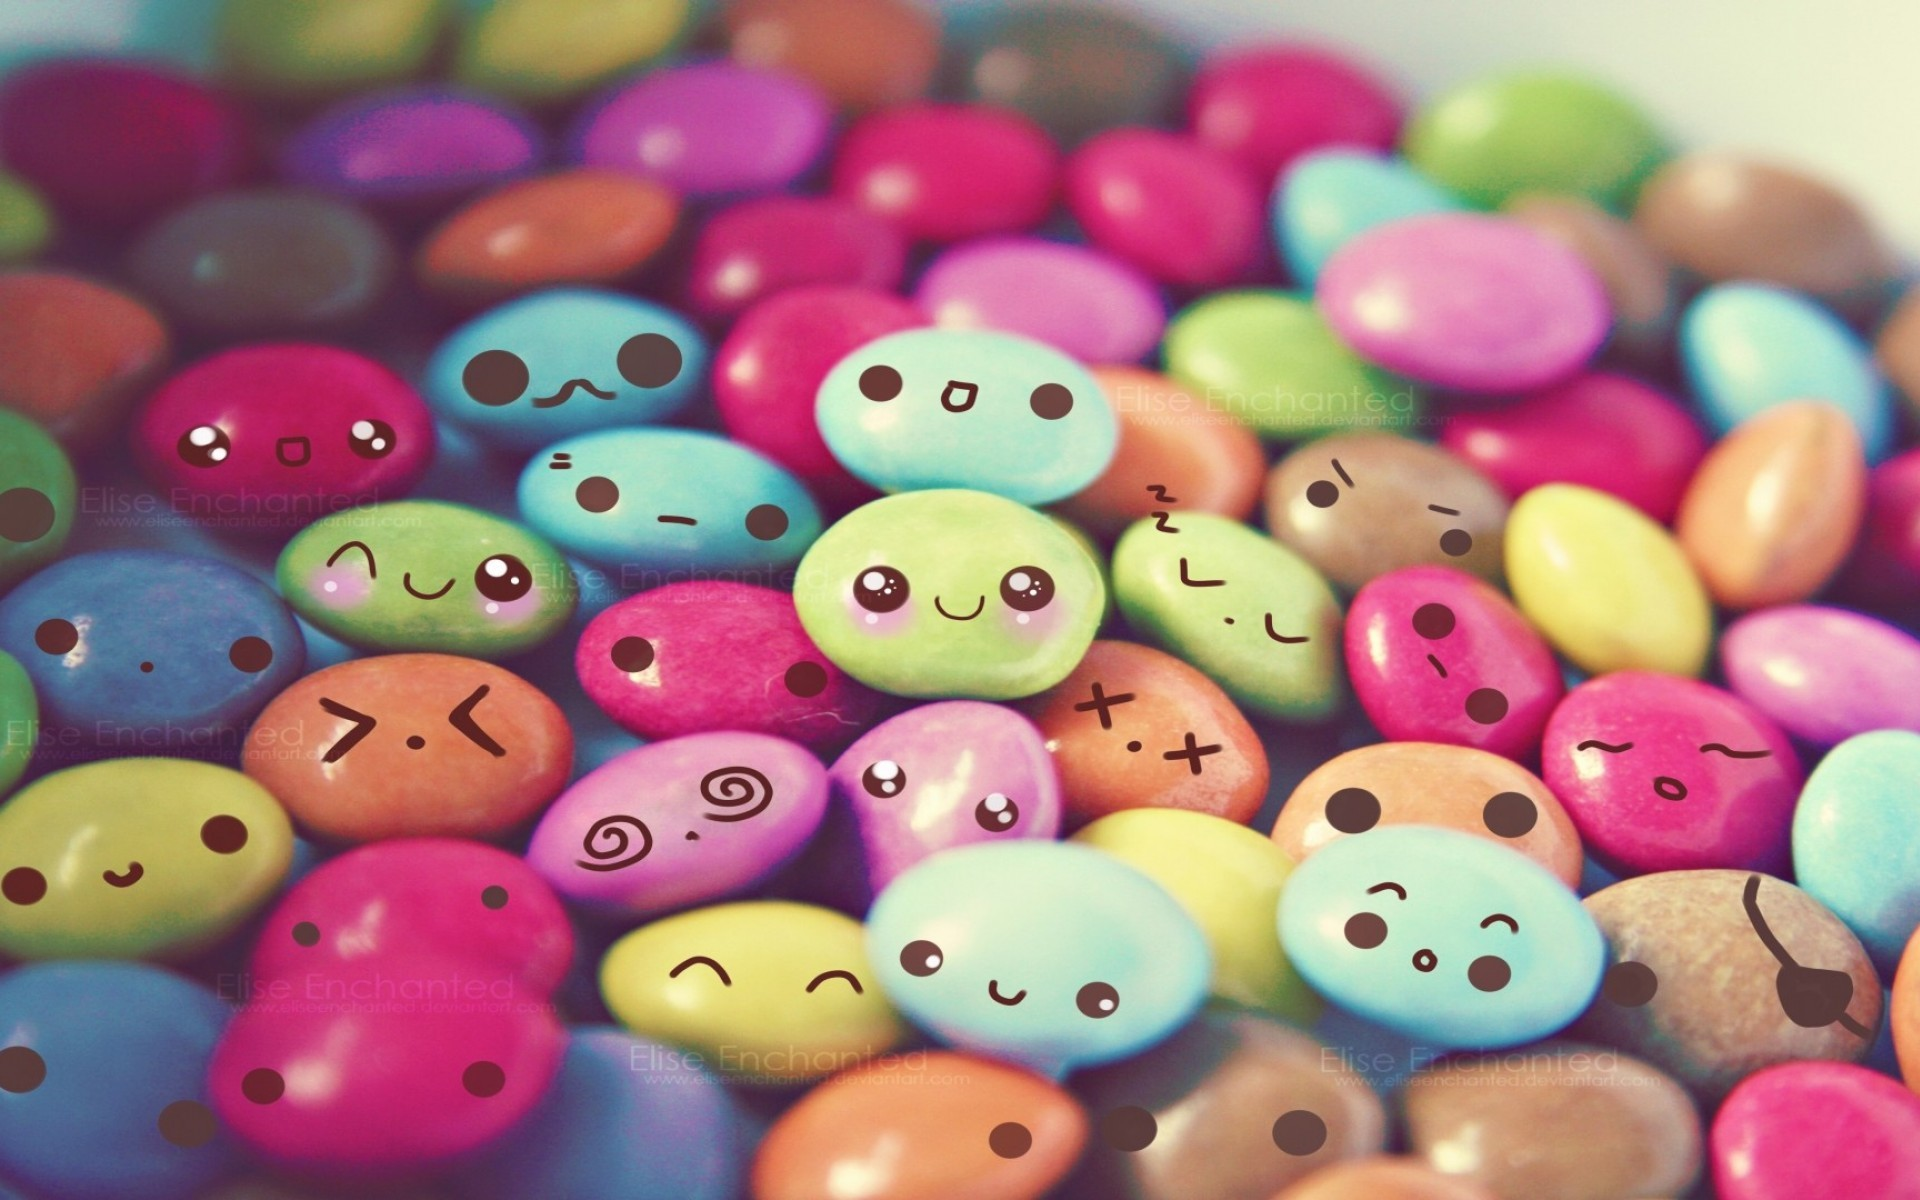 Wallpapers Of Cute Wallpapers) – Adorable Wallpapers